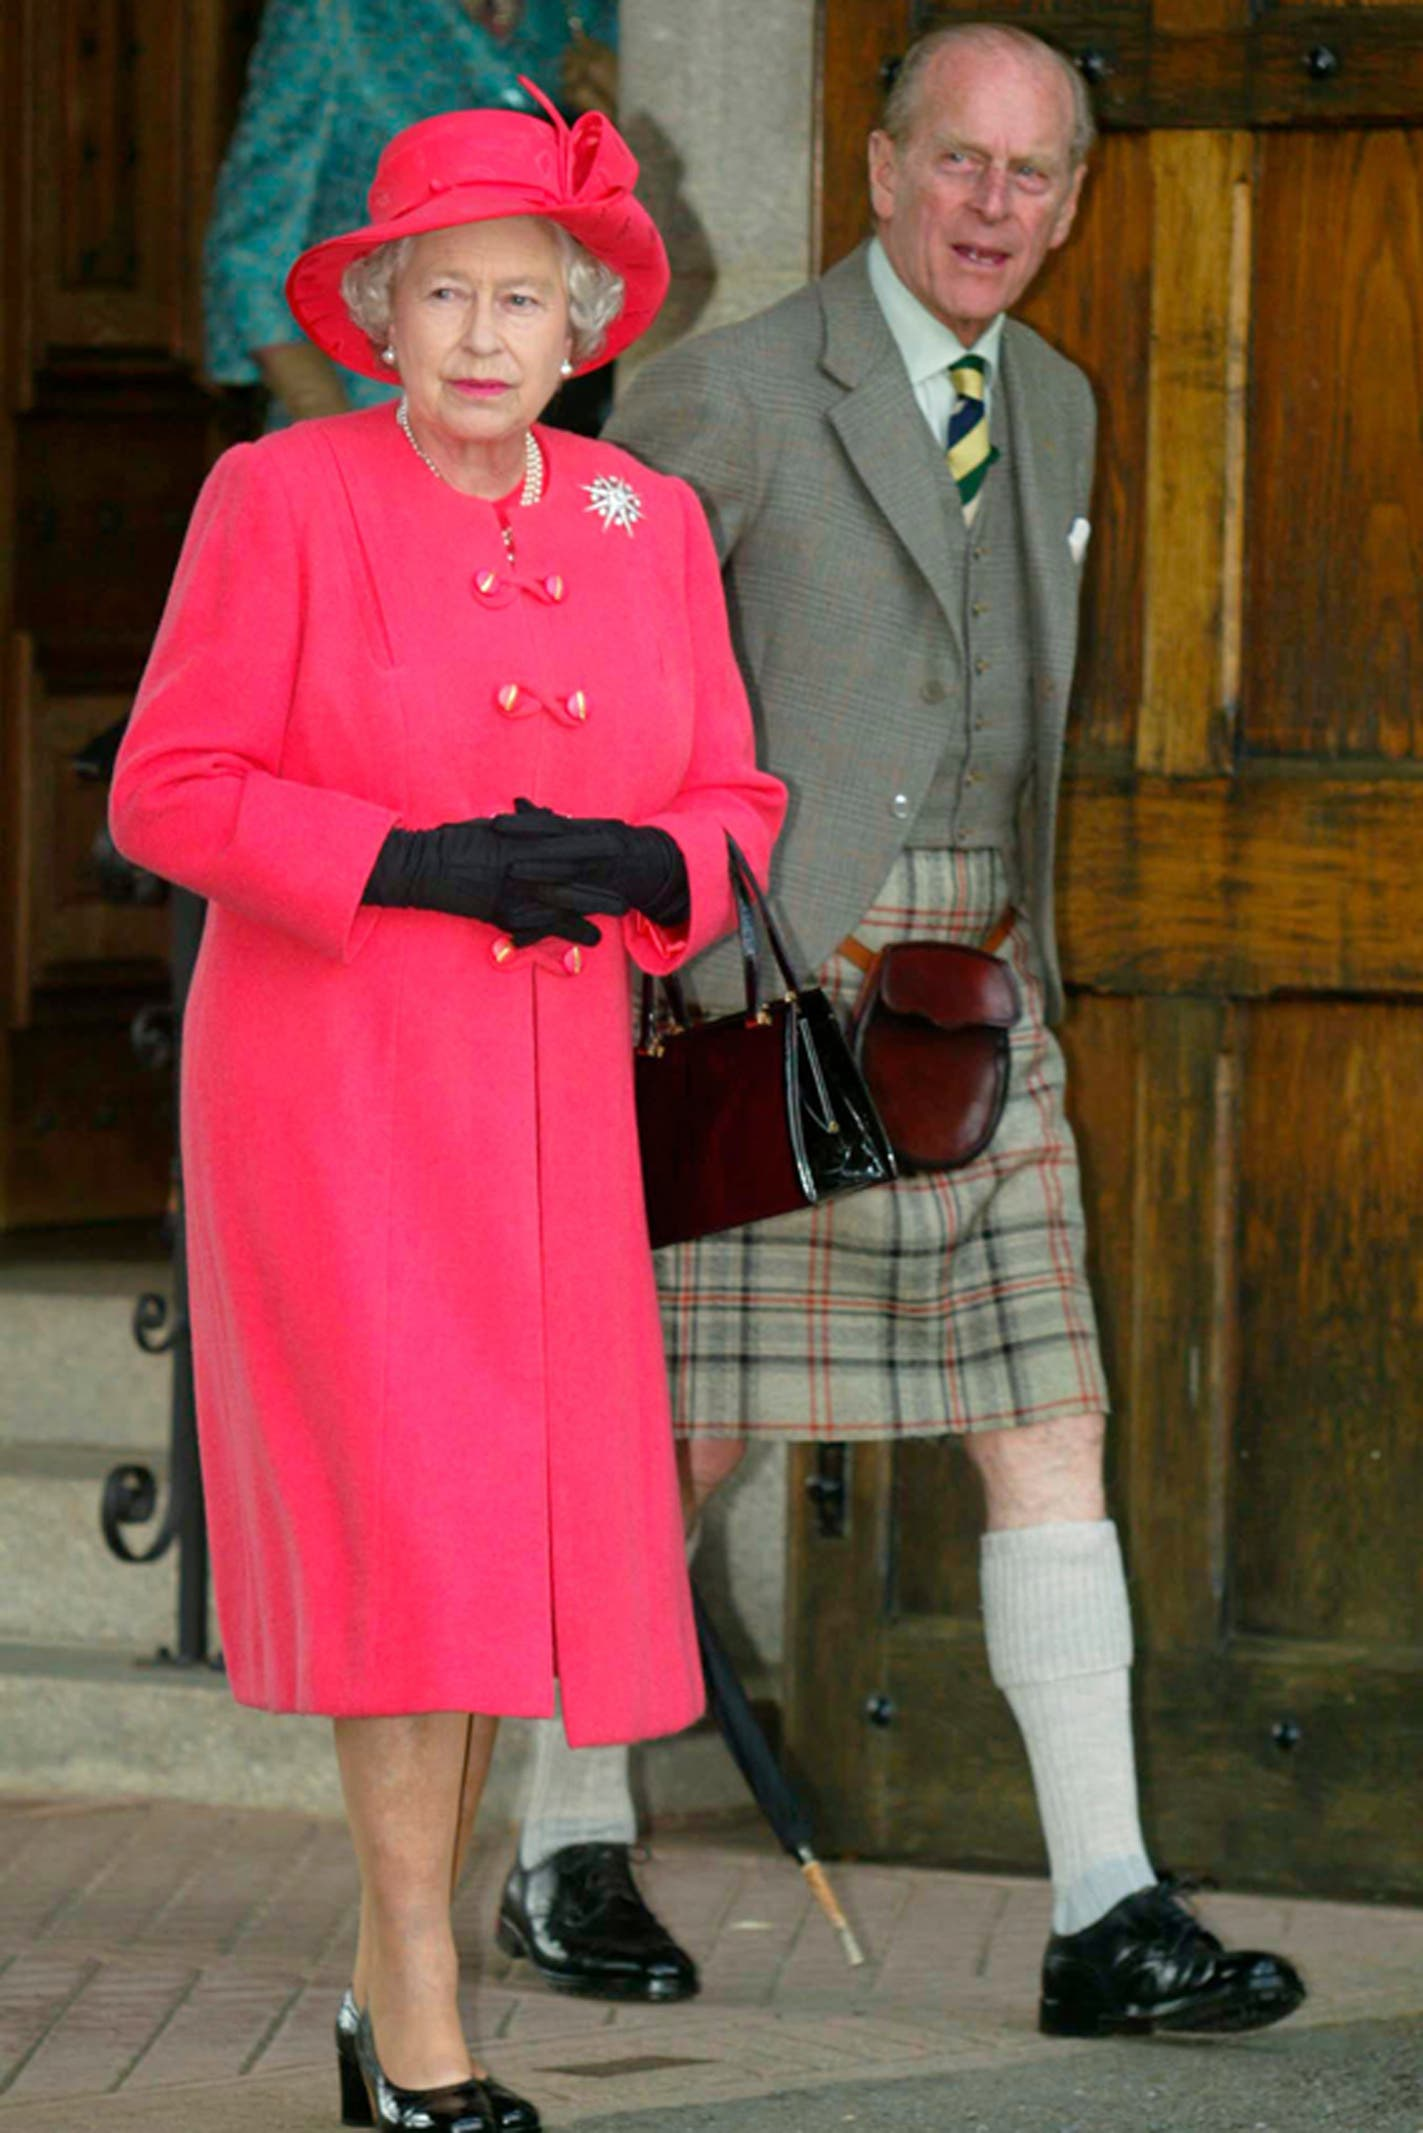 In Scotland, Queen Elizabeth II's husband always wore a kilt to formal occasions.  Image credit: Getty Images